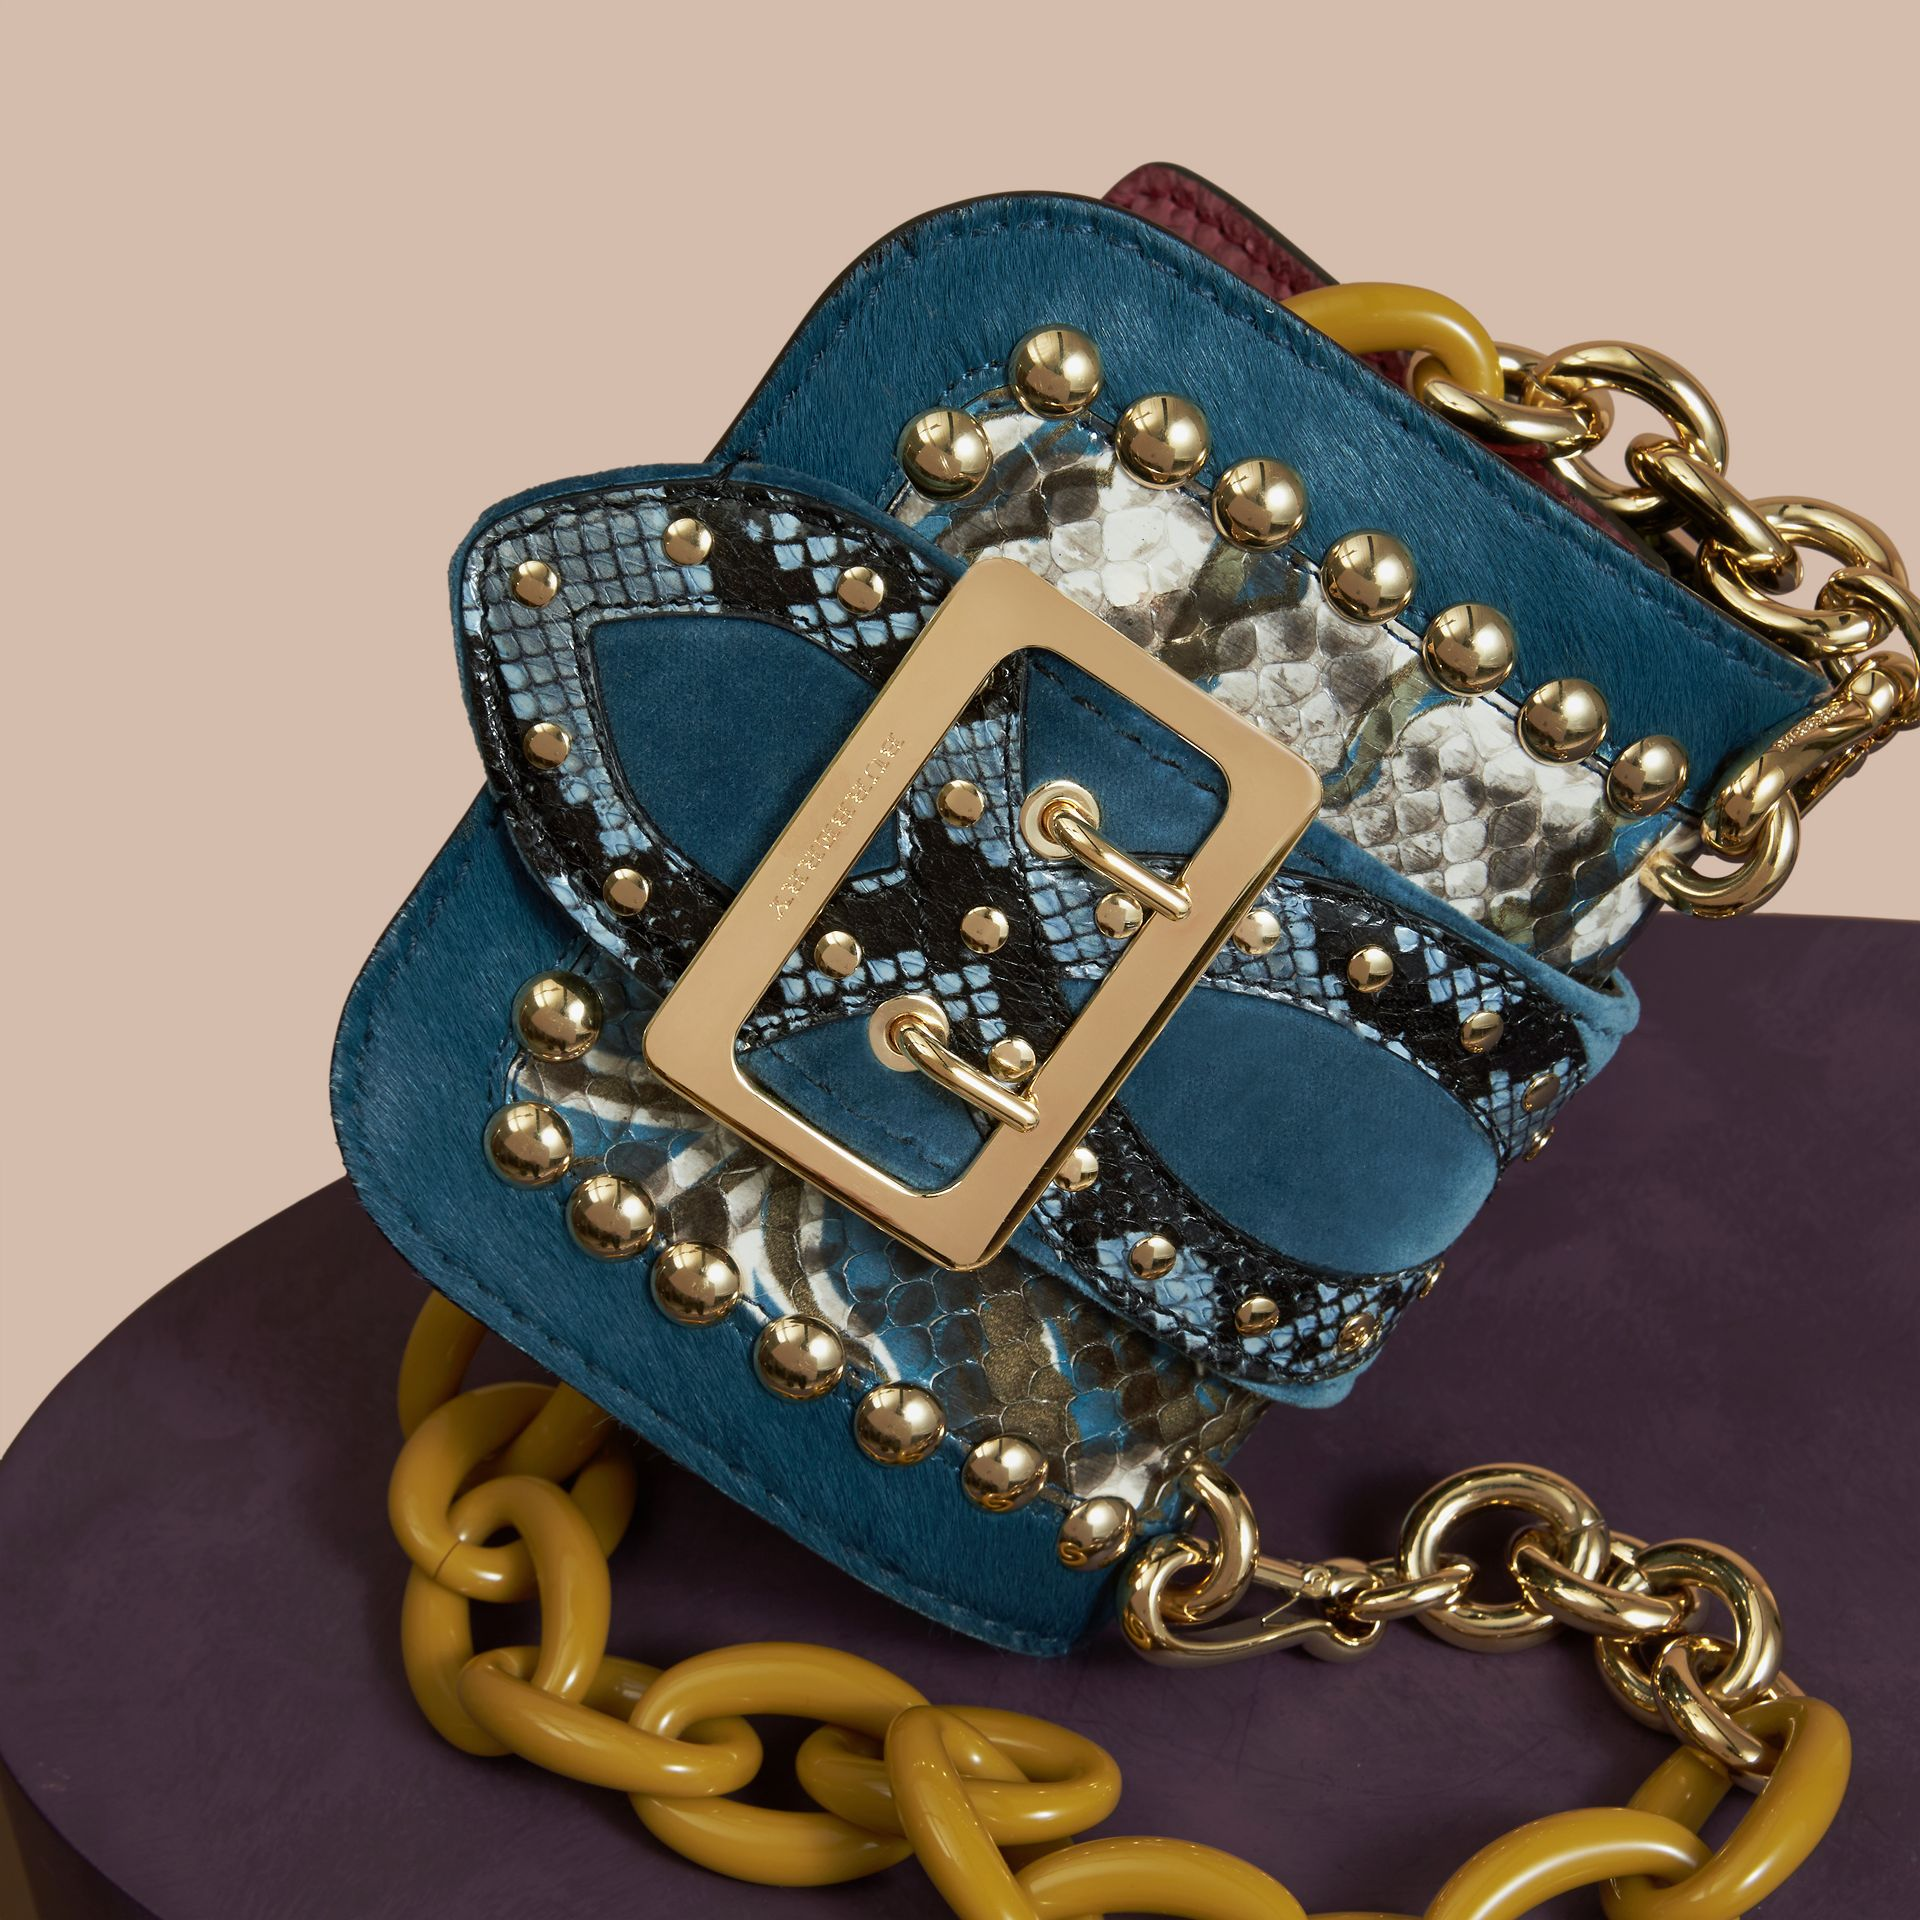 Borsa The Buckle mini quadrata in cavallino, pelle di serpente e velluto - immagine della galleria 6